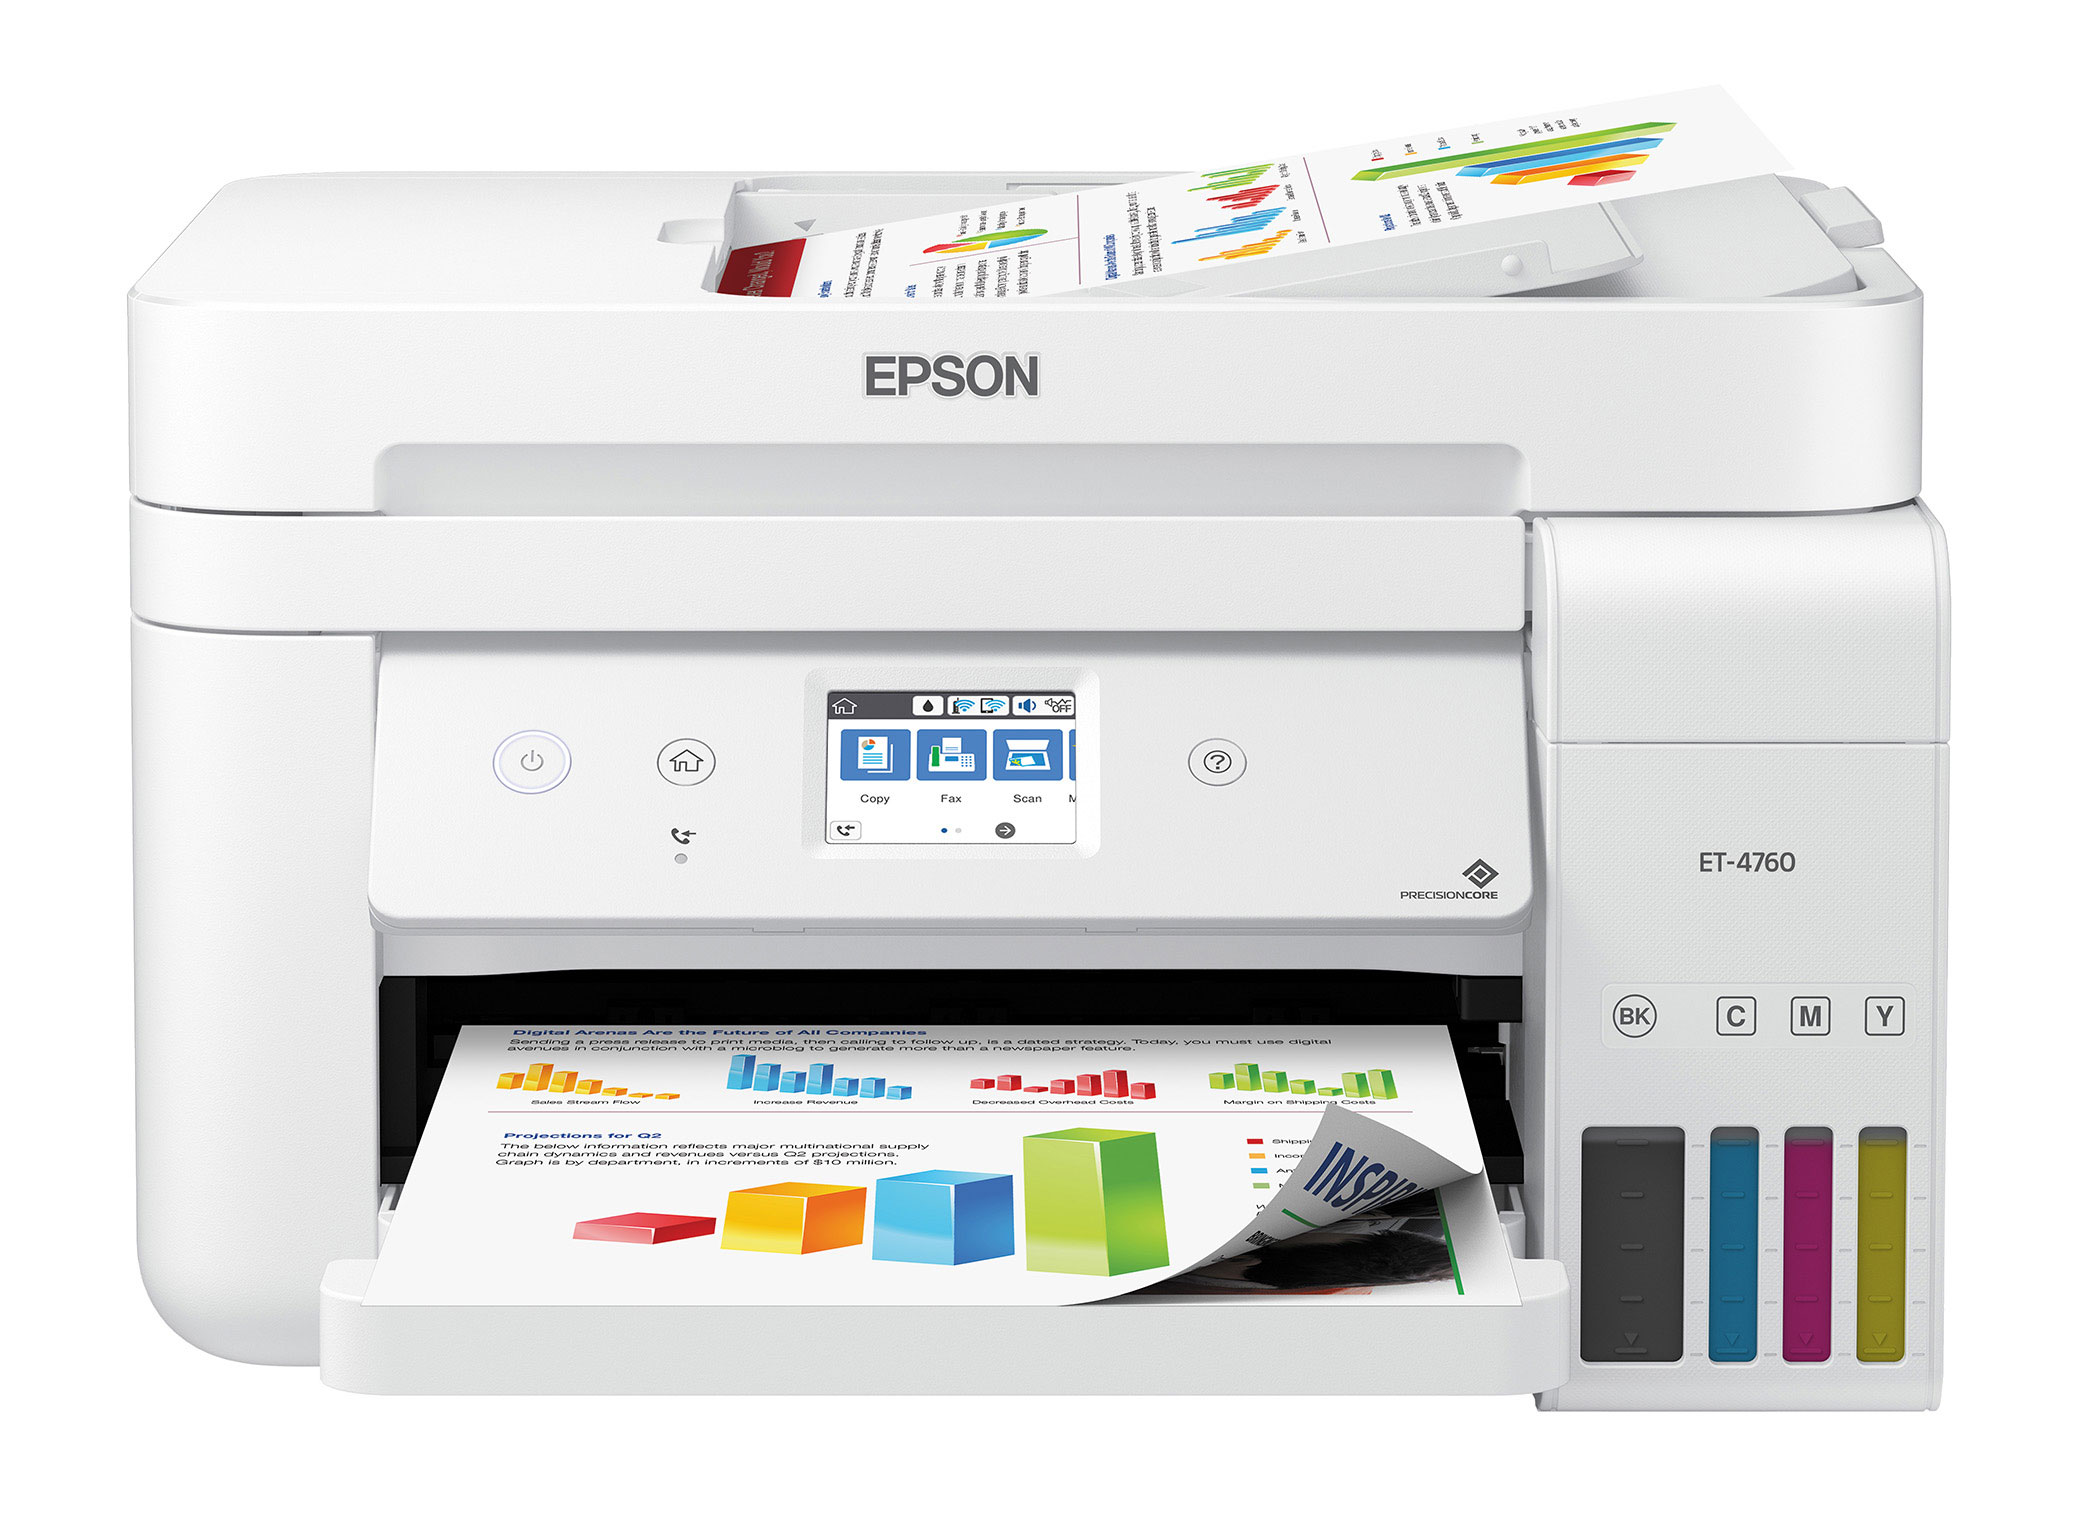 The Epson EcoTank ET-4760 All-in-One Supertank Printer offers fast, wireless, cartridge-free printing with ADF and fax for the office.